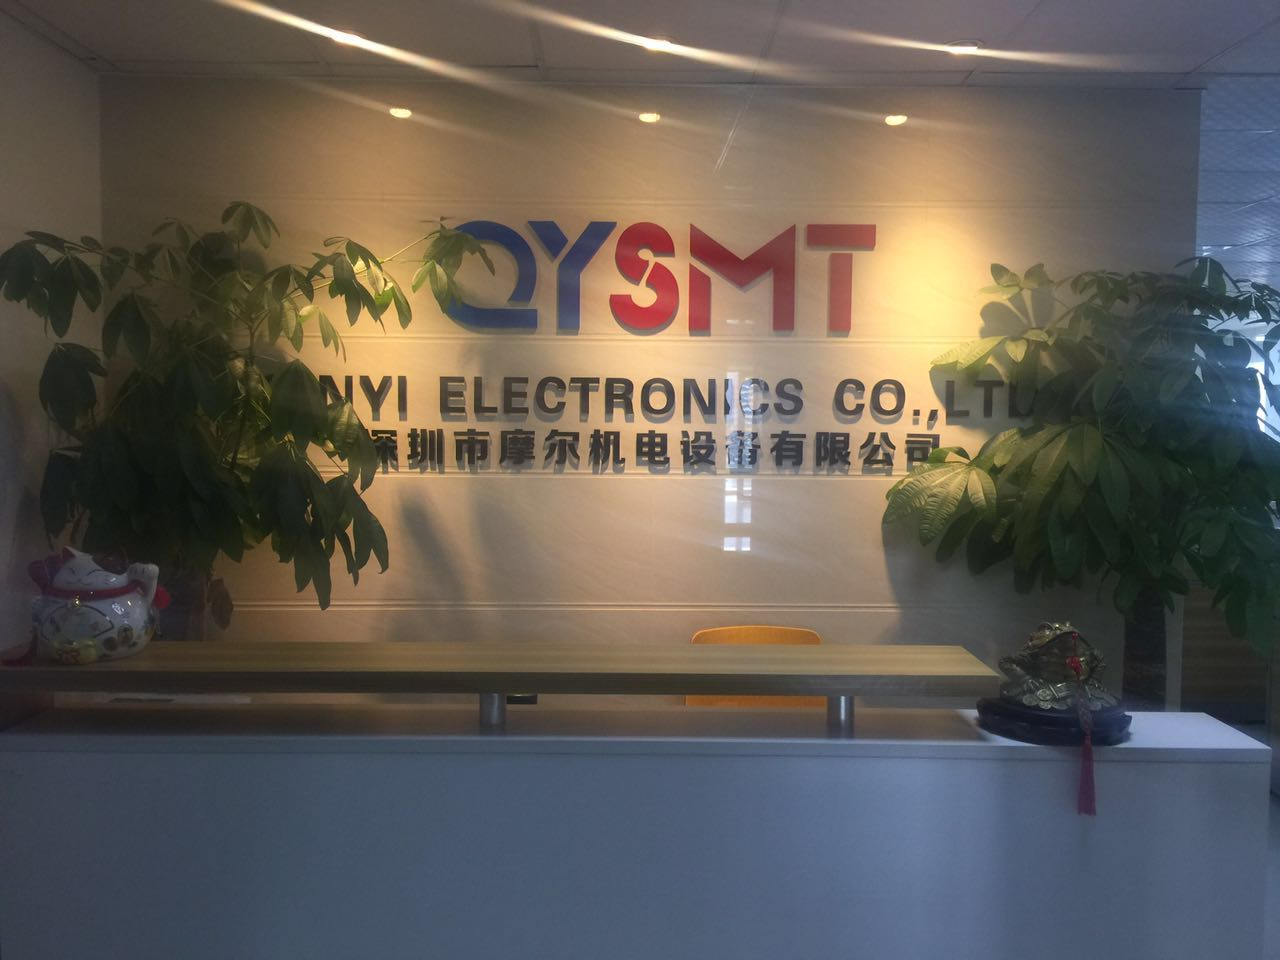 Qinyi Electronic Co.,Ltd logo